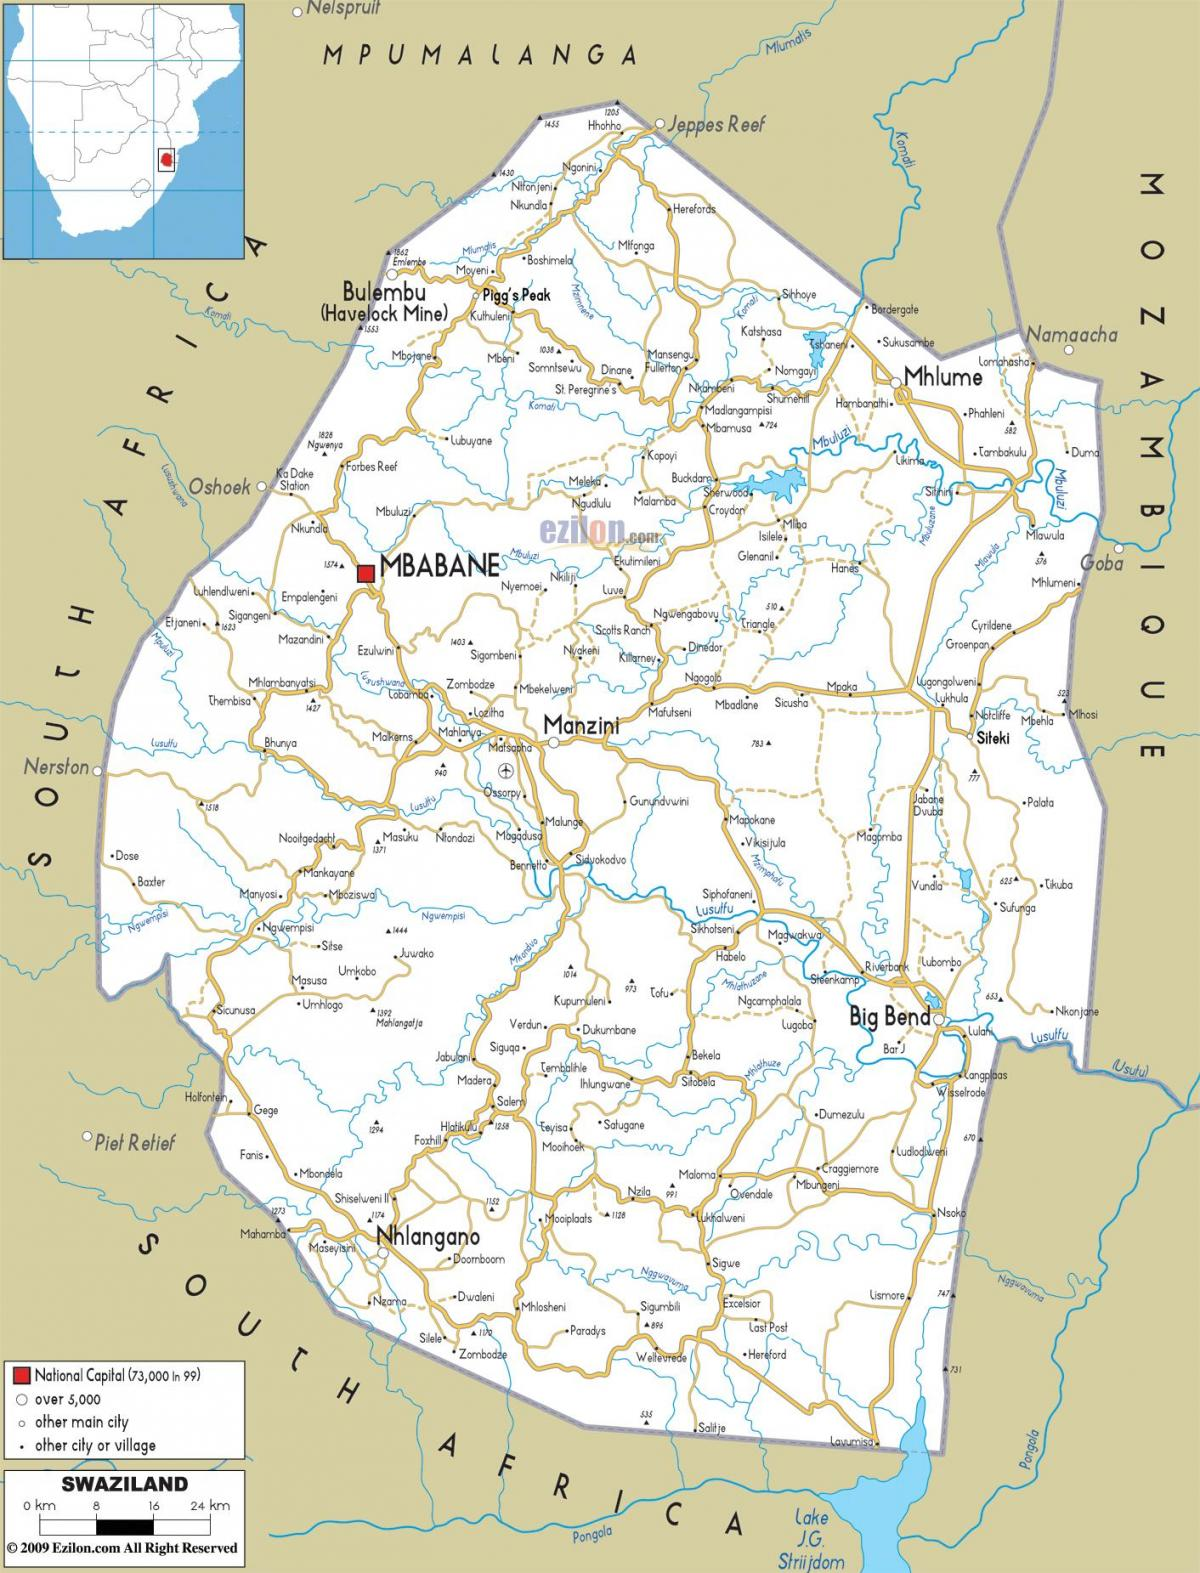 the map of Swaziland